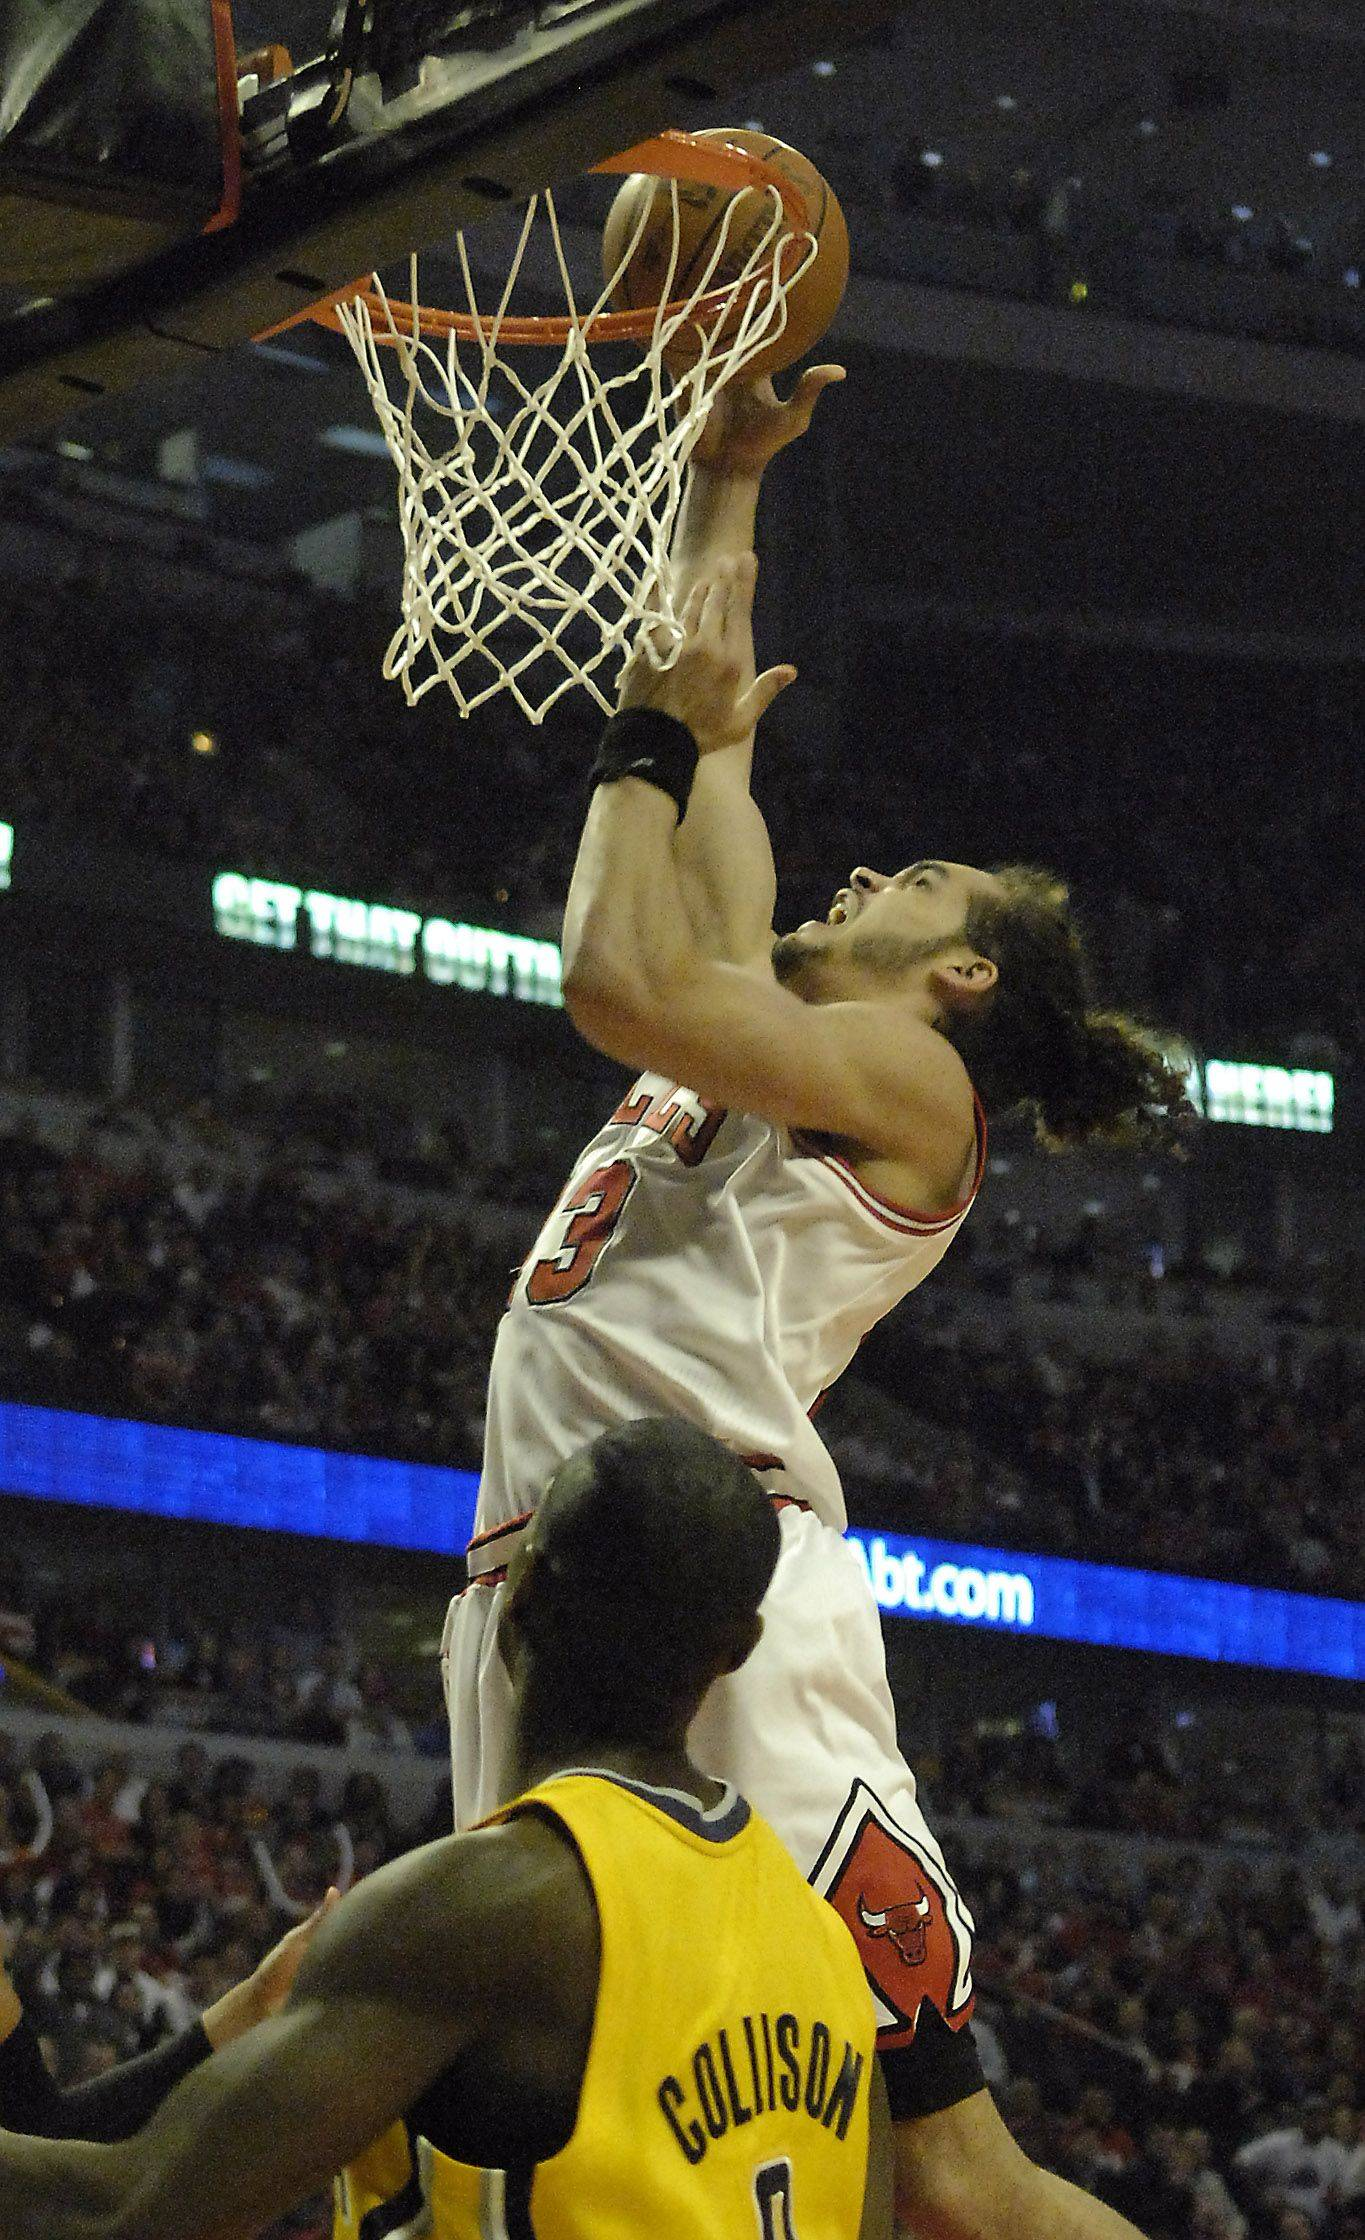 Chicago Bulls center Joakim Noah scores and is fouled during the first half of game 5 of the NBA Eastern Conference quarterfinals in Chicago Tuesday.